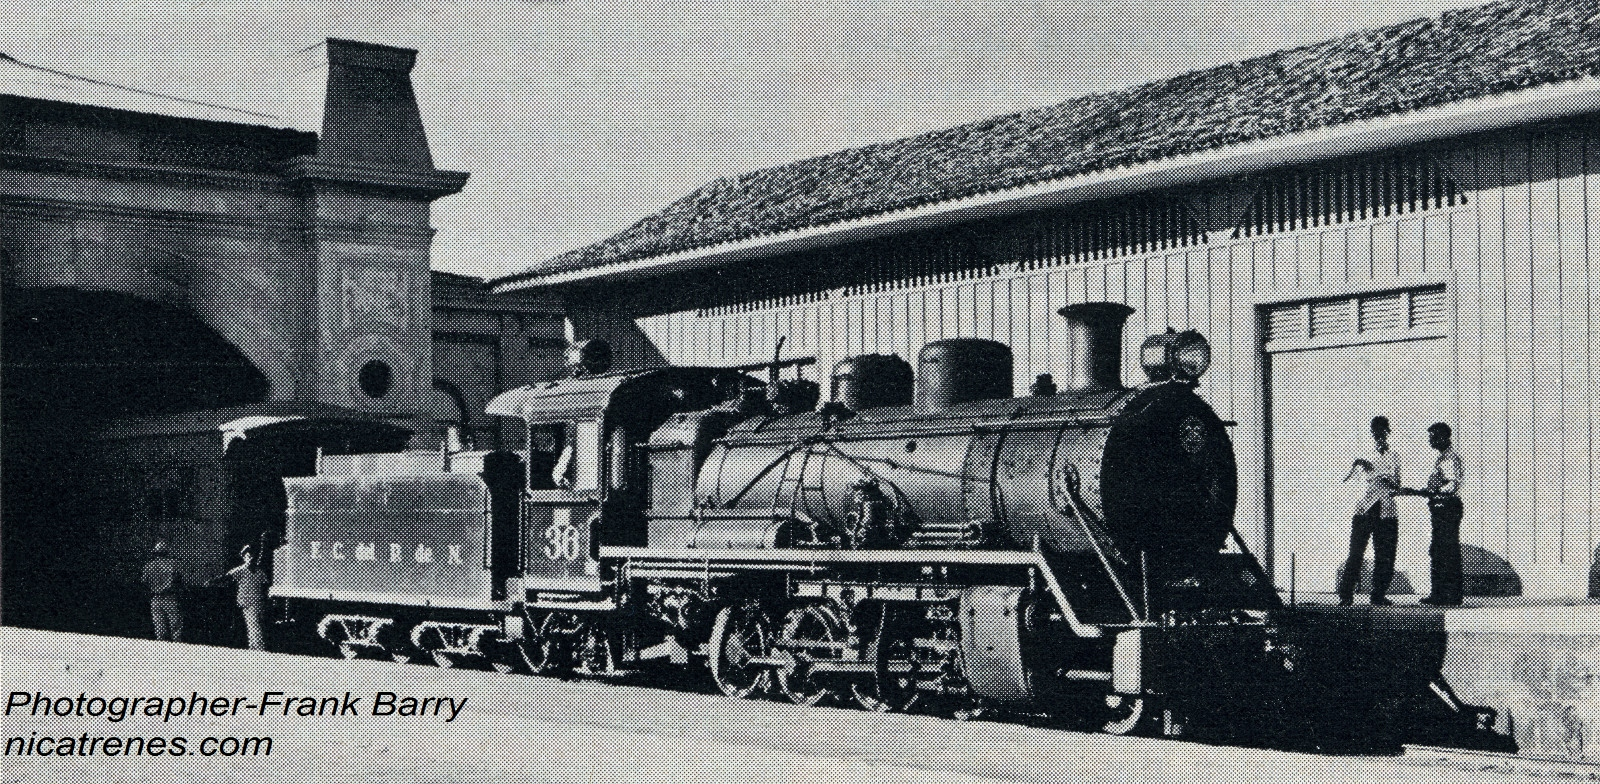 Locomotive Num. 36 at Granada Station 1962